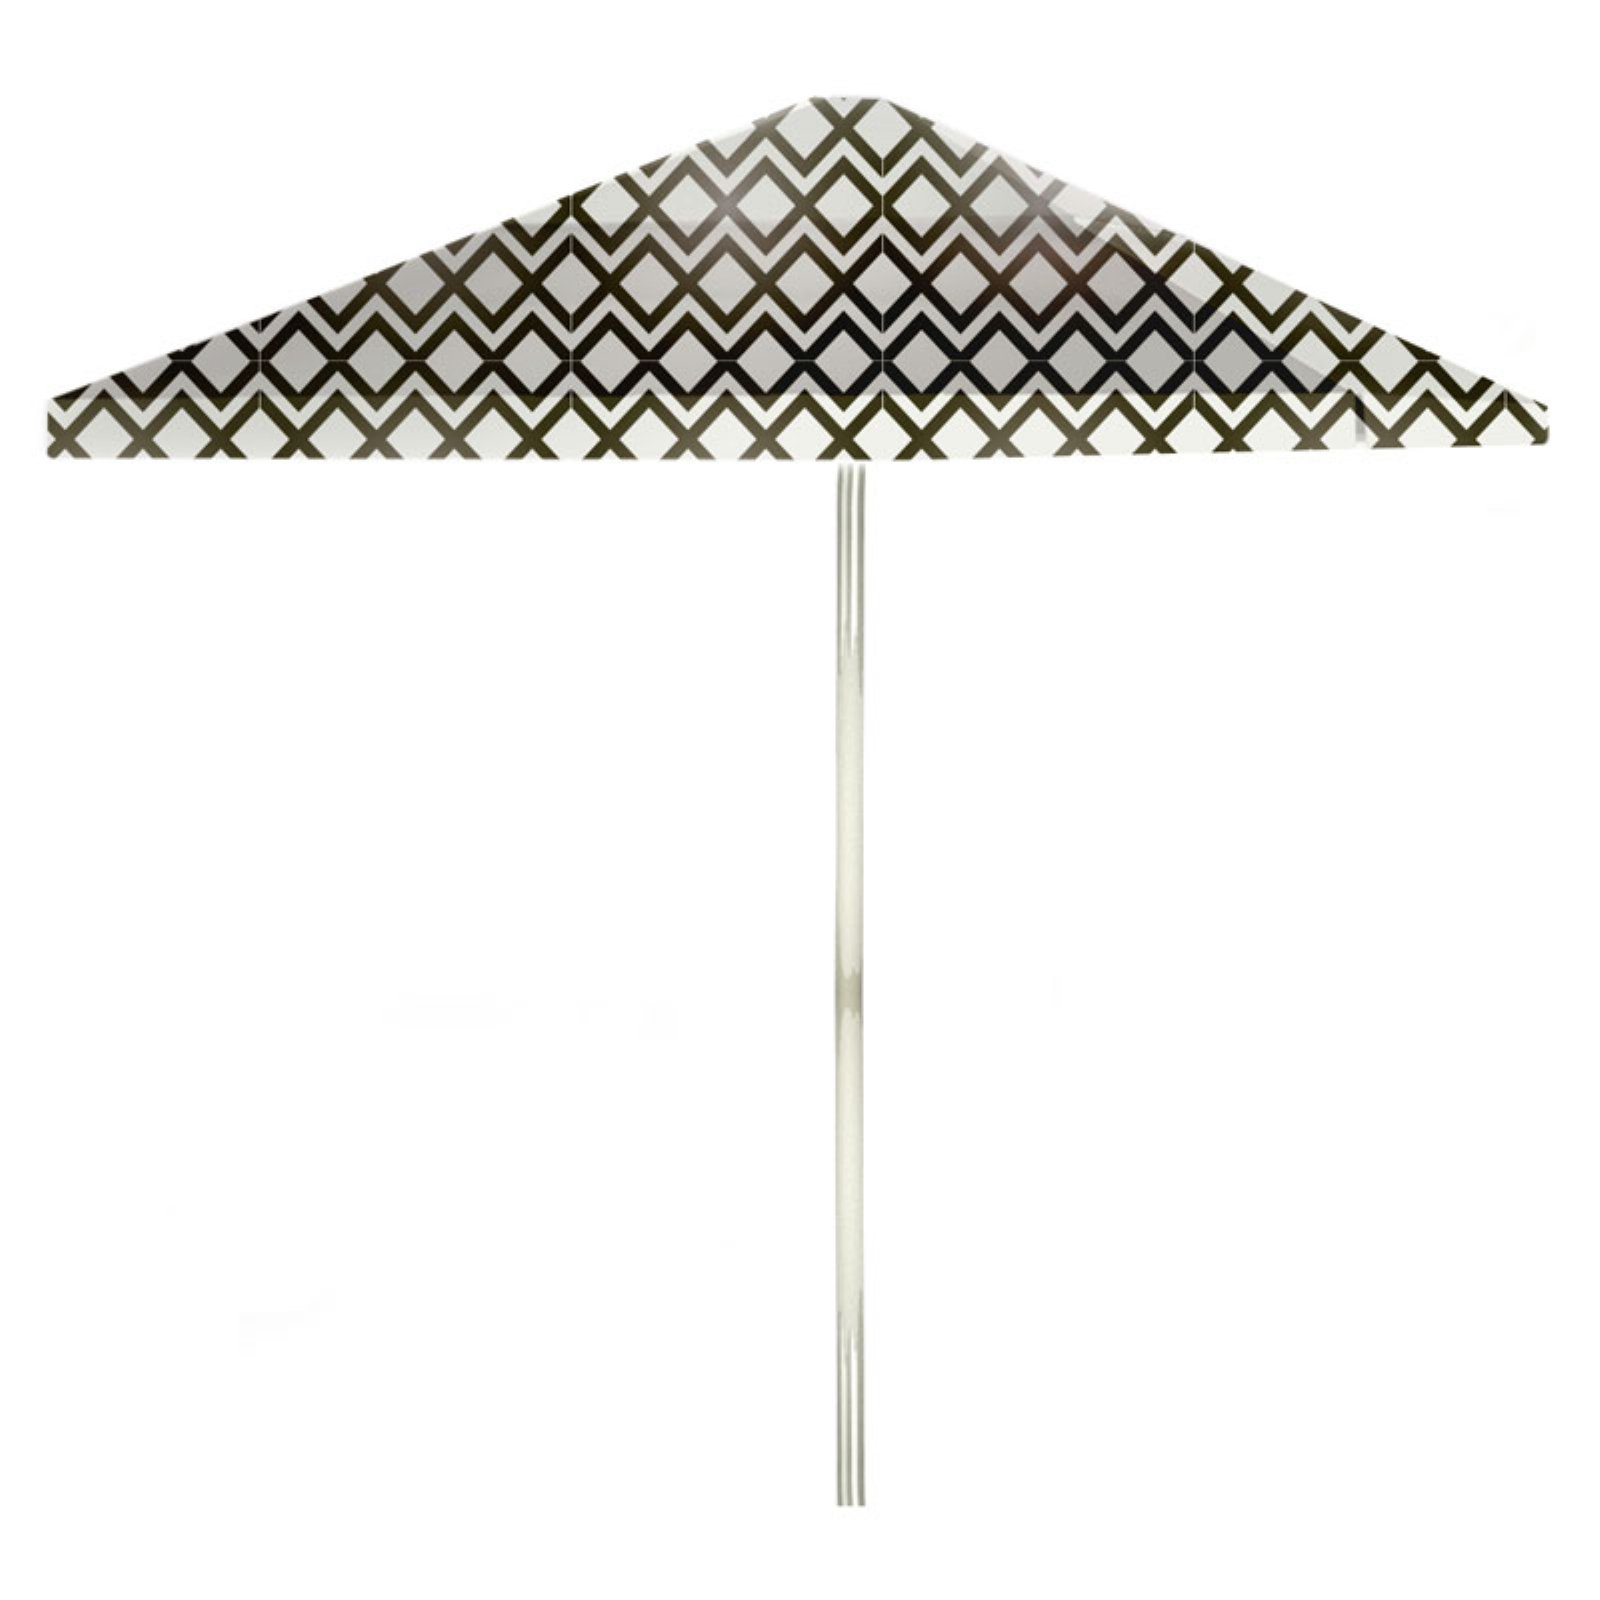 Best of Times 8 ft. Aluminum Patterned Patio Umbrella by Overstock